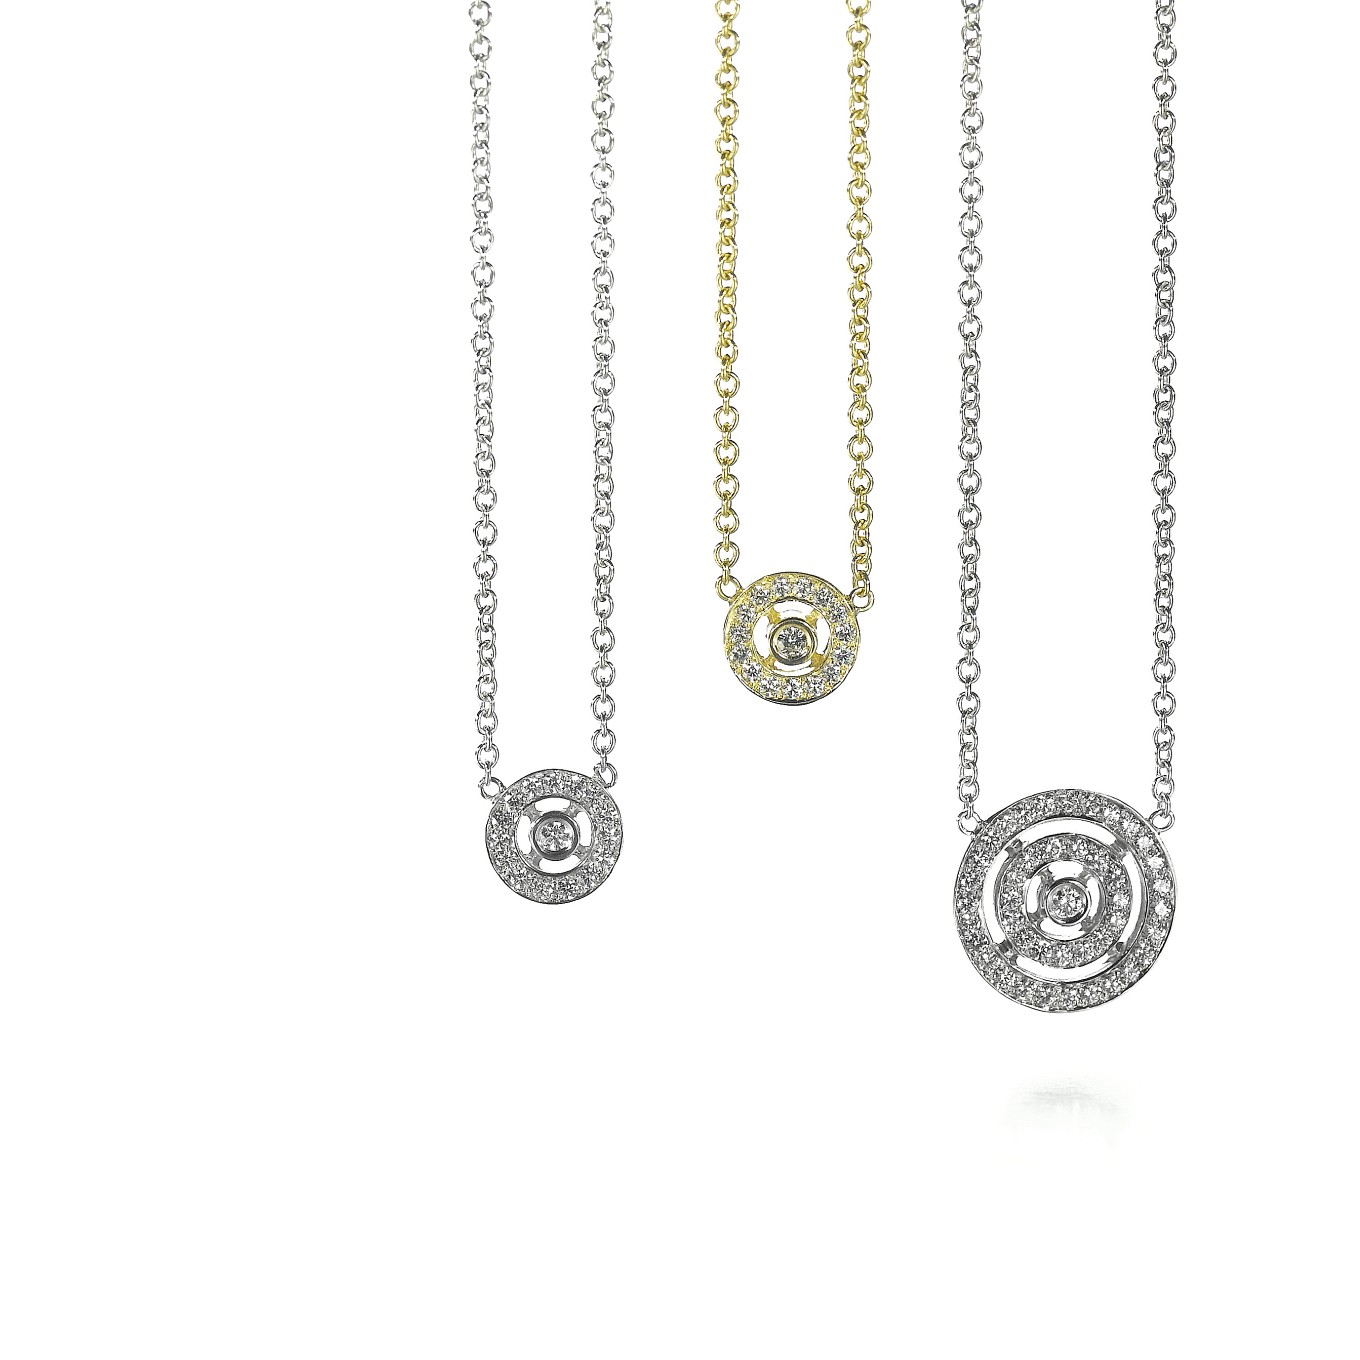 CIRCLE DIAMOND PENDANTS IN WHITE OR YELLOW GOLD. DOUBLE CIRCLE DIAMOND PENDANT IN WHITE GOLD